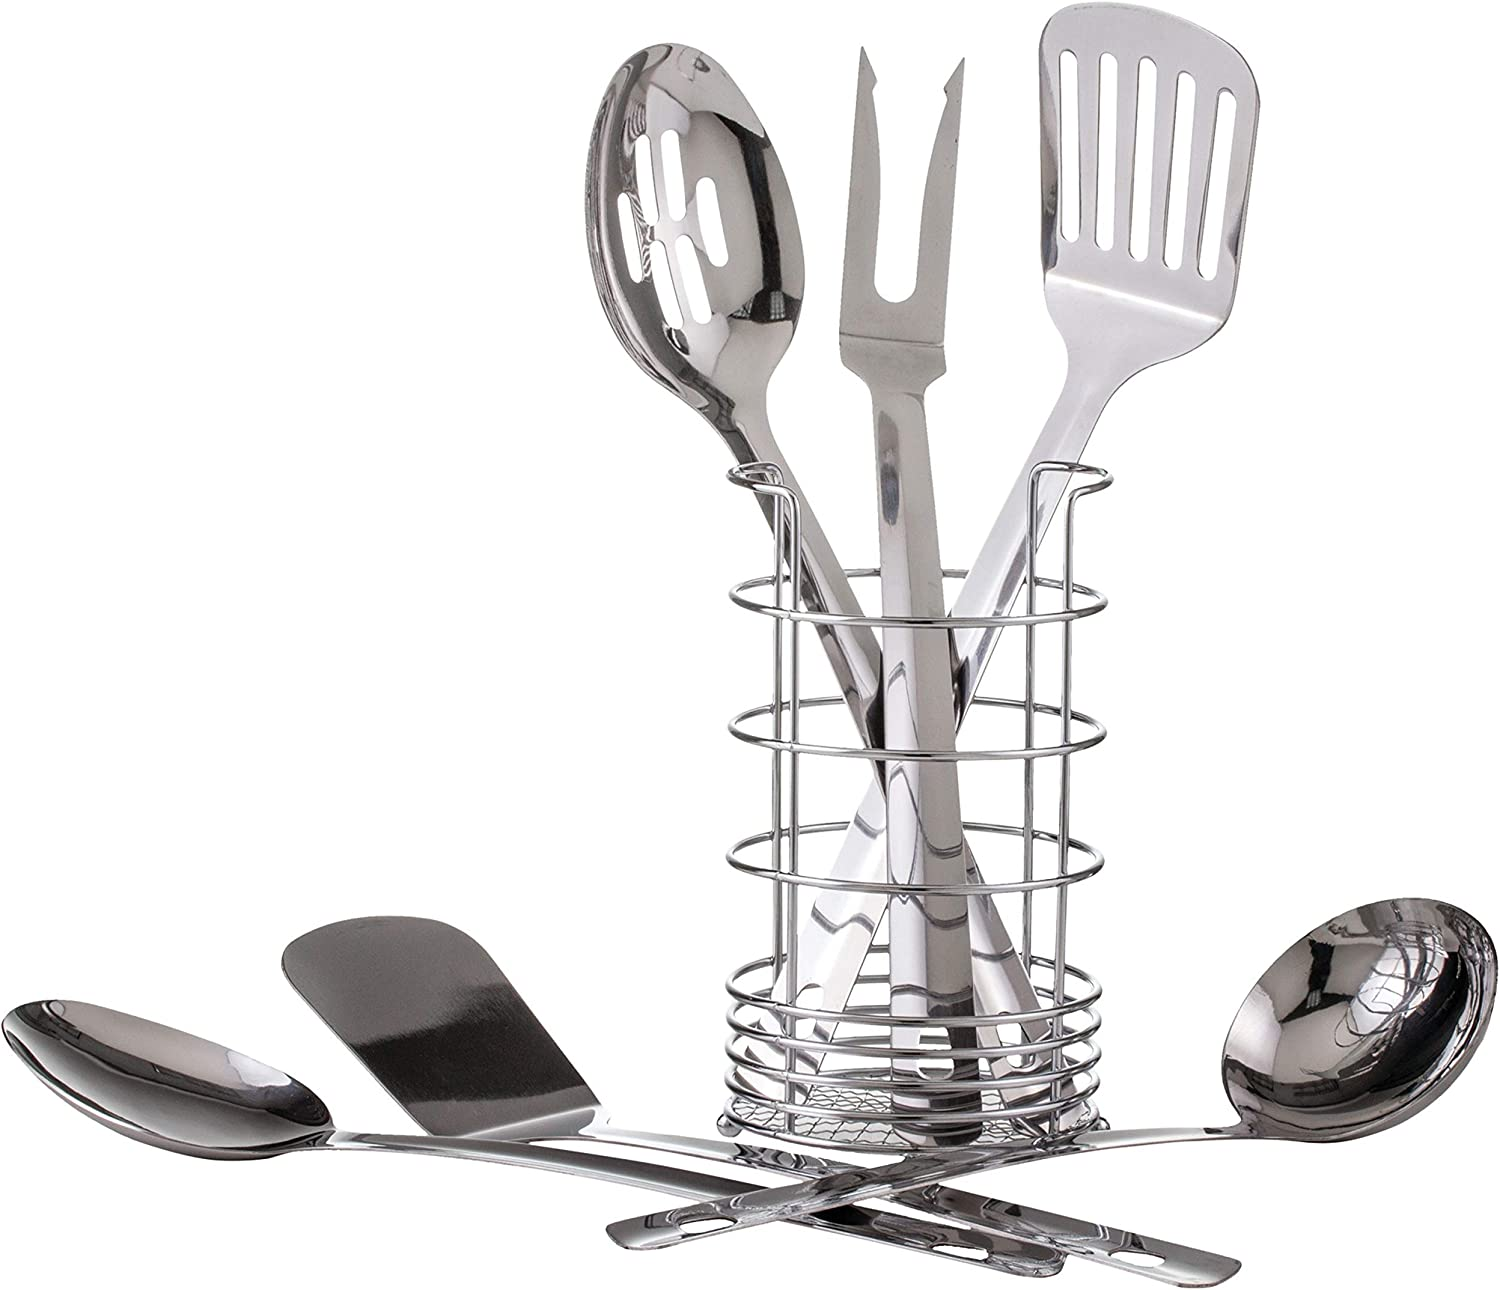 Maxam 7 Piece Stainless Steel Kitchen Tool Set With Meat Fork 2 Spatulas 2 Spoons Ladle And Convenient Wire Storage Caddy Garden Outdoor